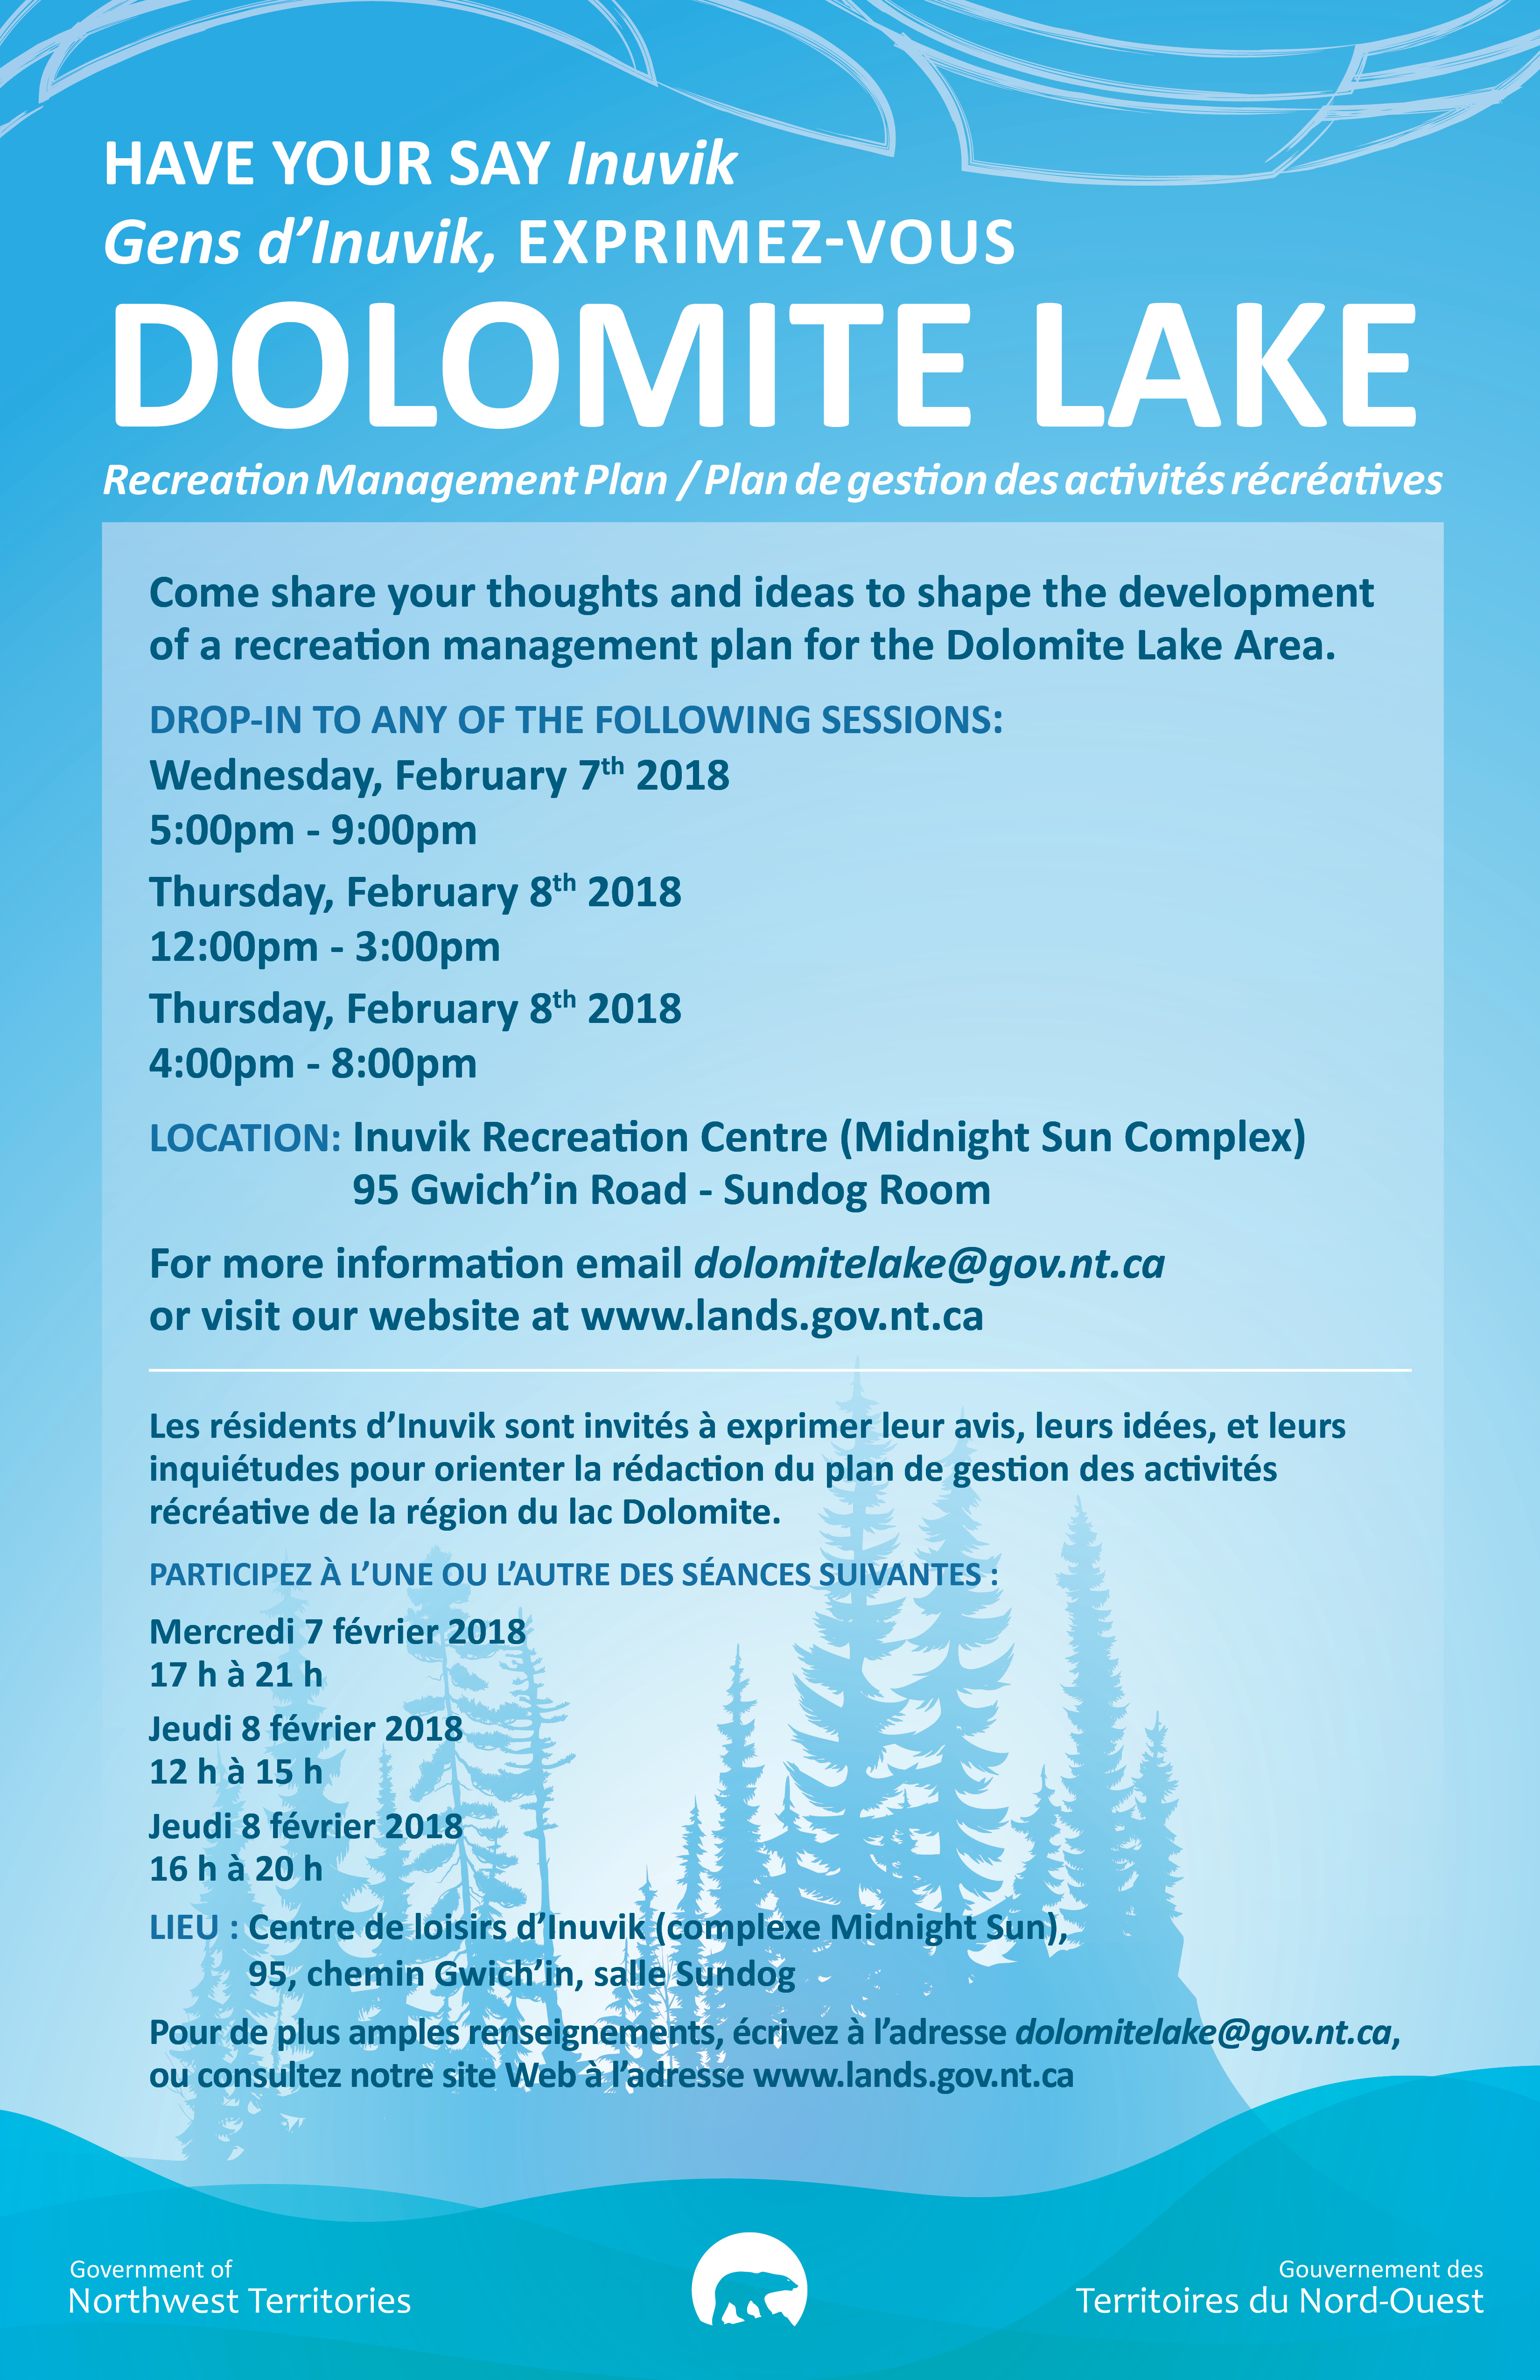 Dolomite Lake Recreation Management Plan Sessions Feb 7th & 8th 2018